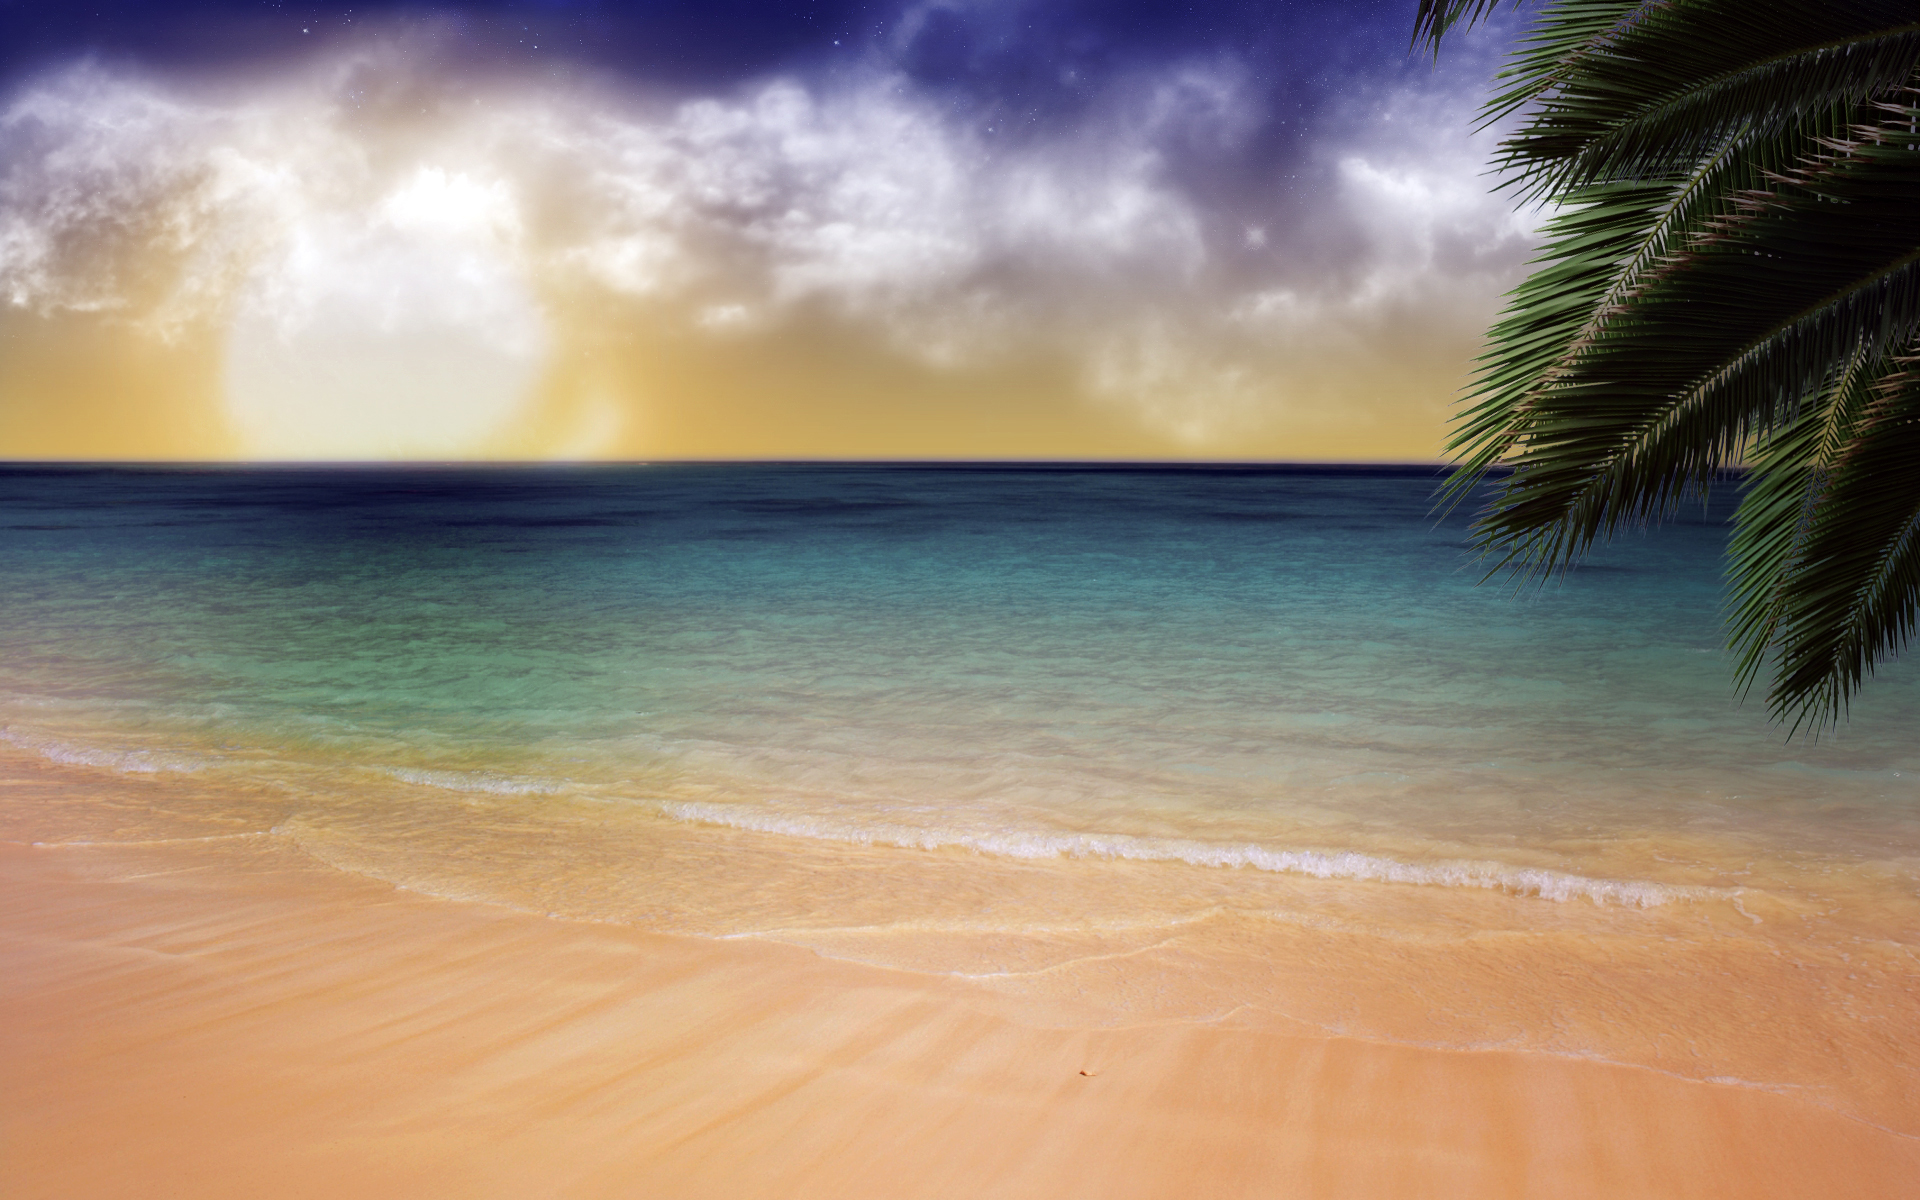 Earth - Ocean  Water Cloud Beach Earth Artistic Wallpaper